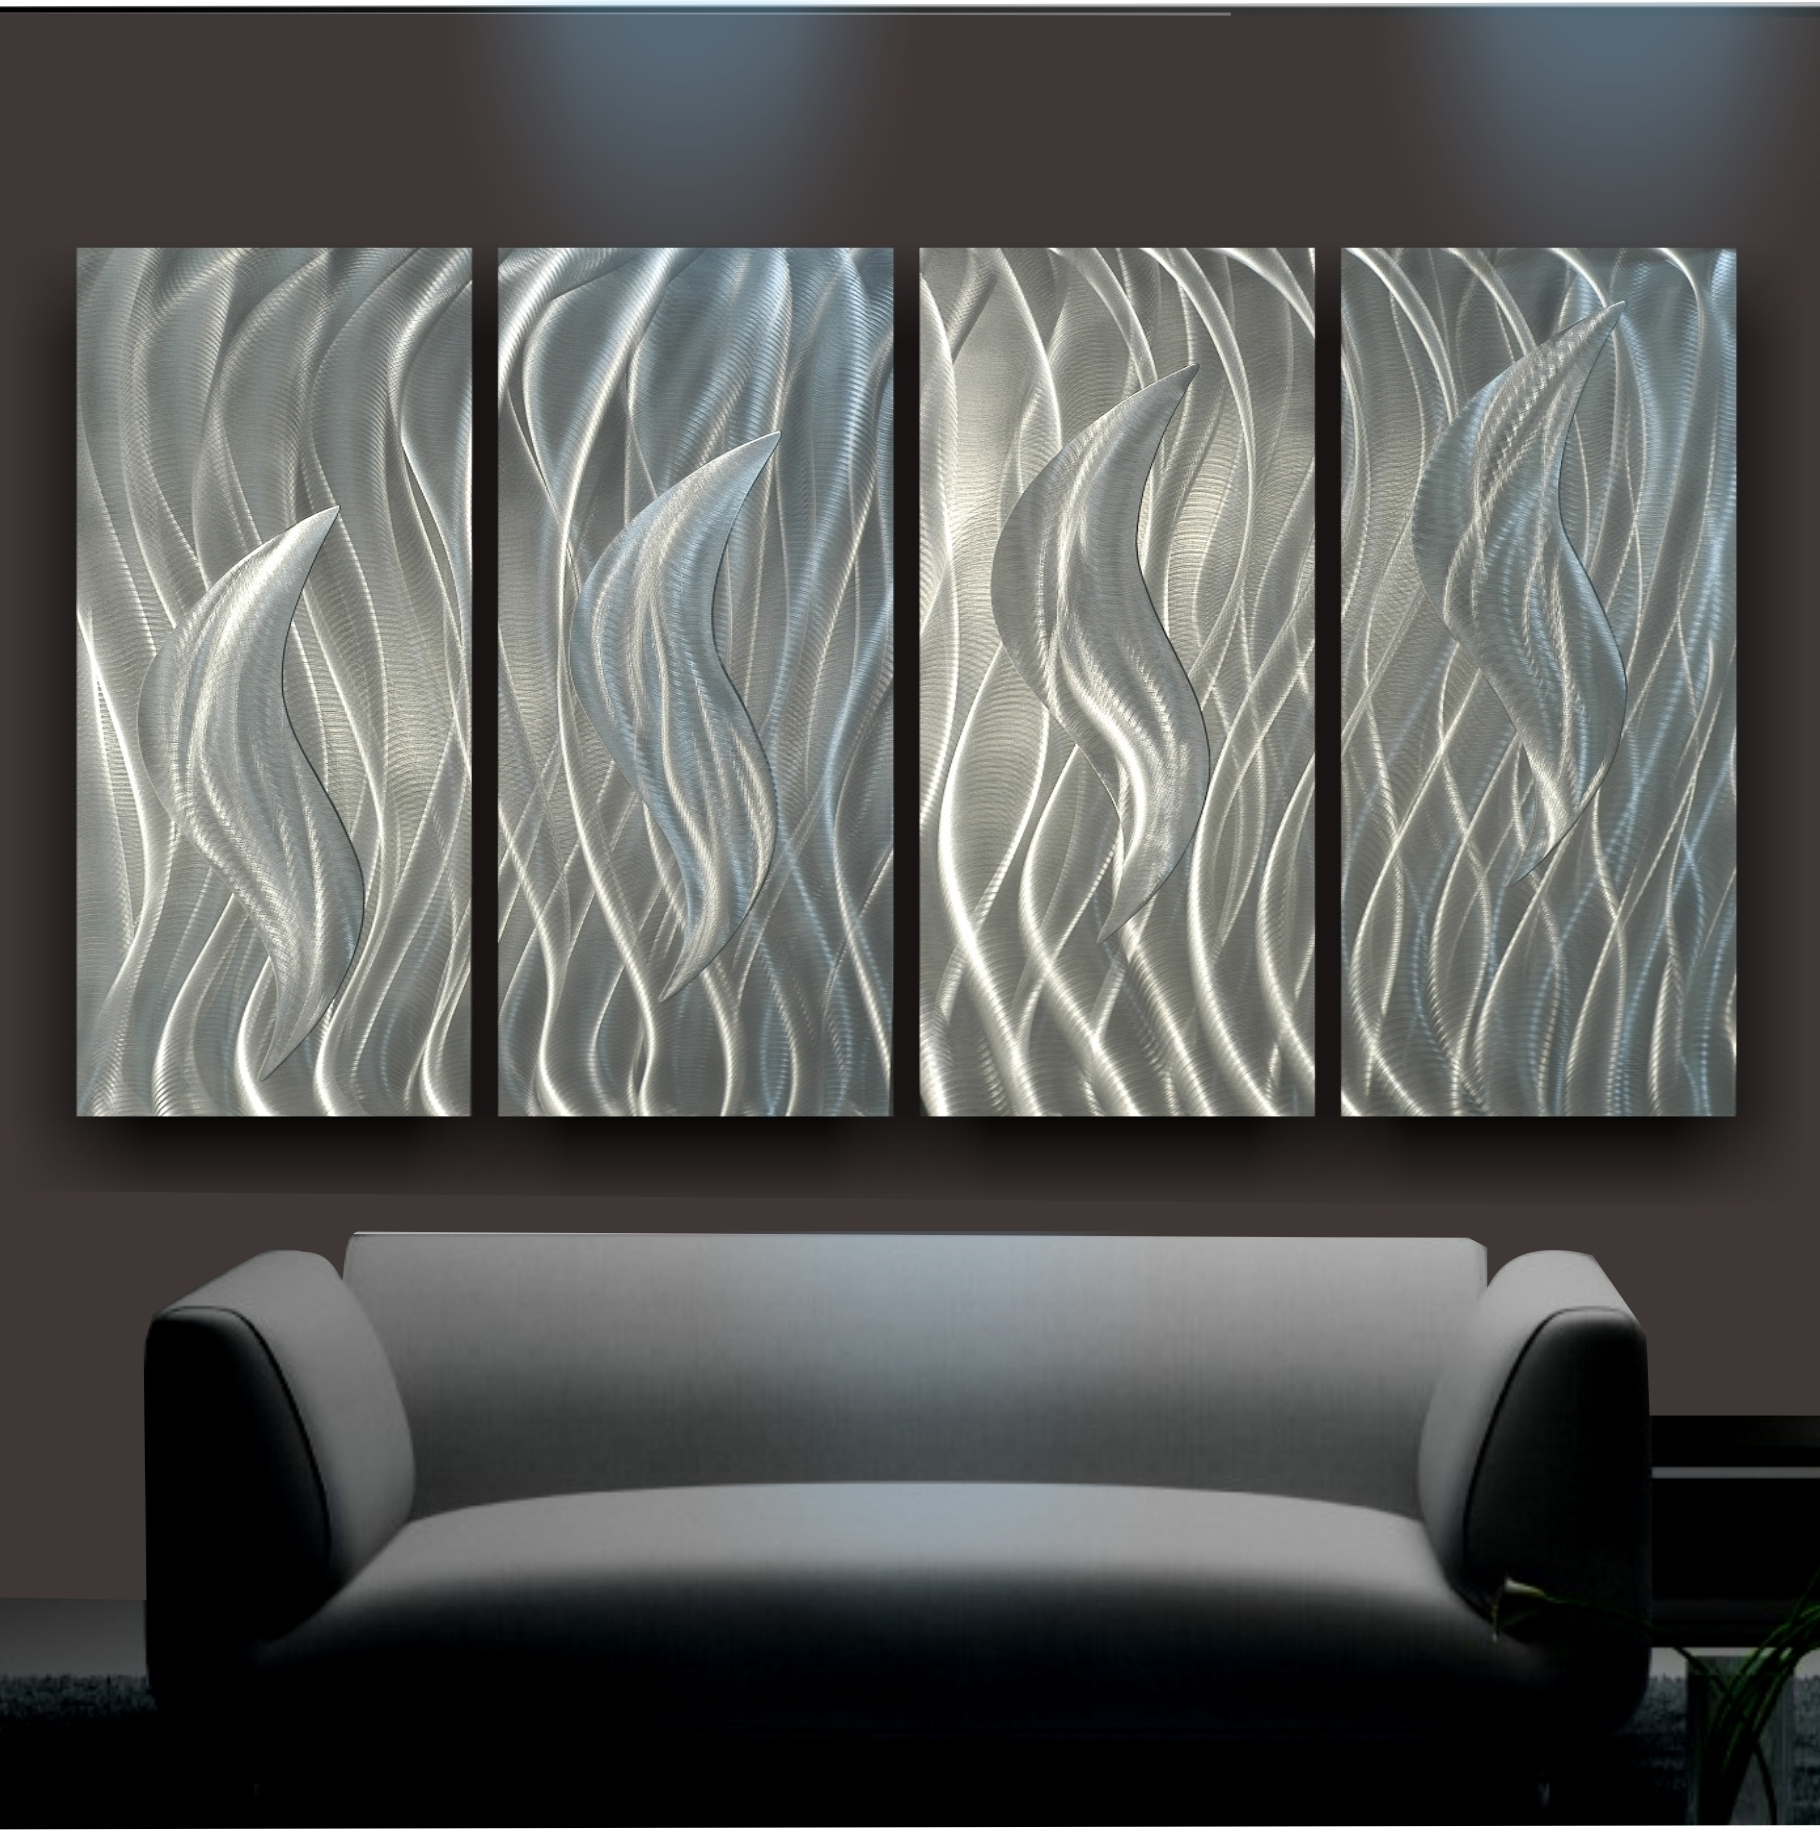 Most Recently Released Steel Wall Surface Fine Art Is A Contemporary Sort Of Art Work With Regard To Fiber Optic Wall Art (View 3 of 15)